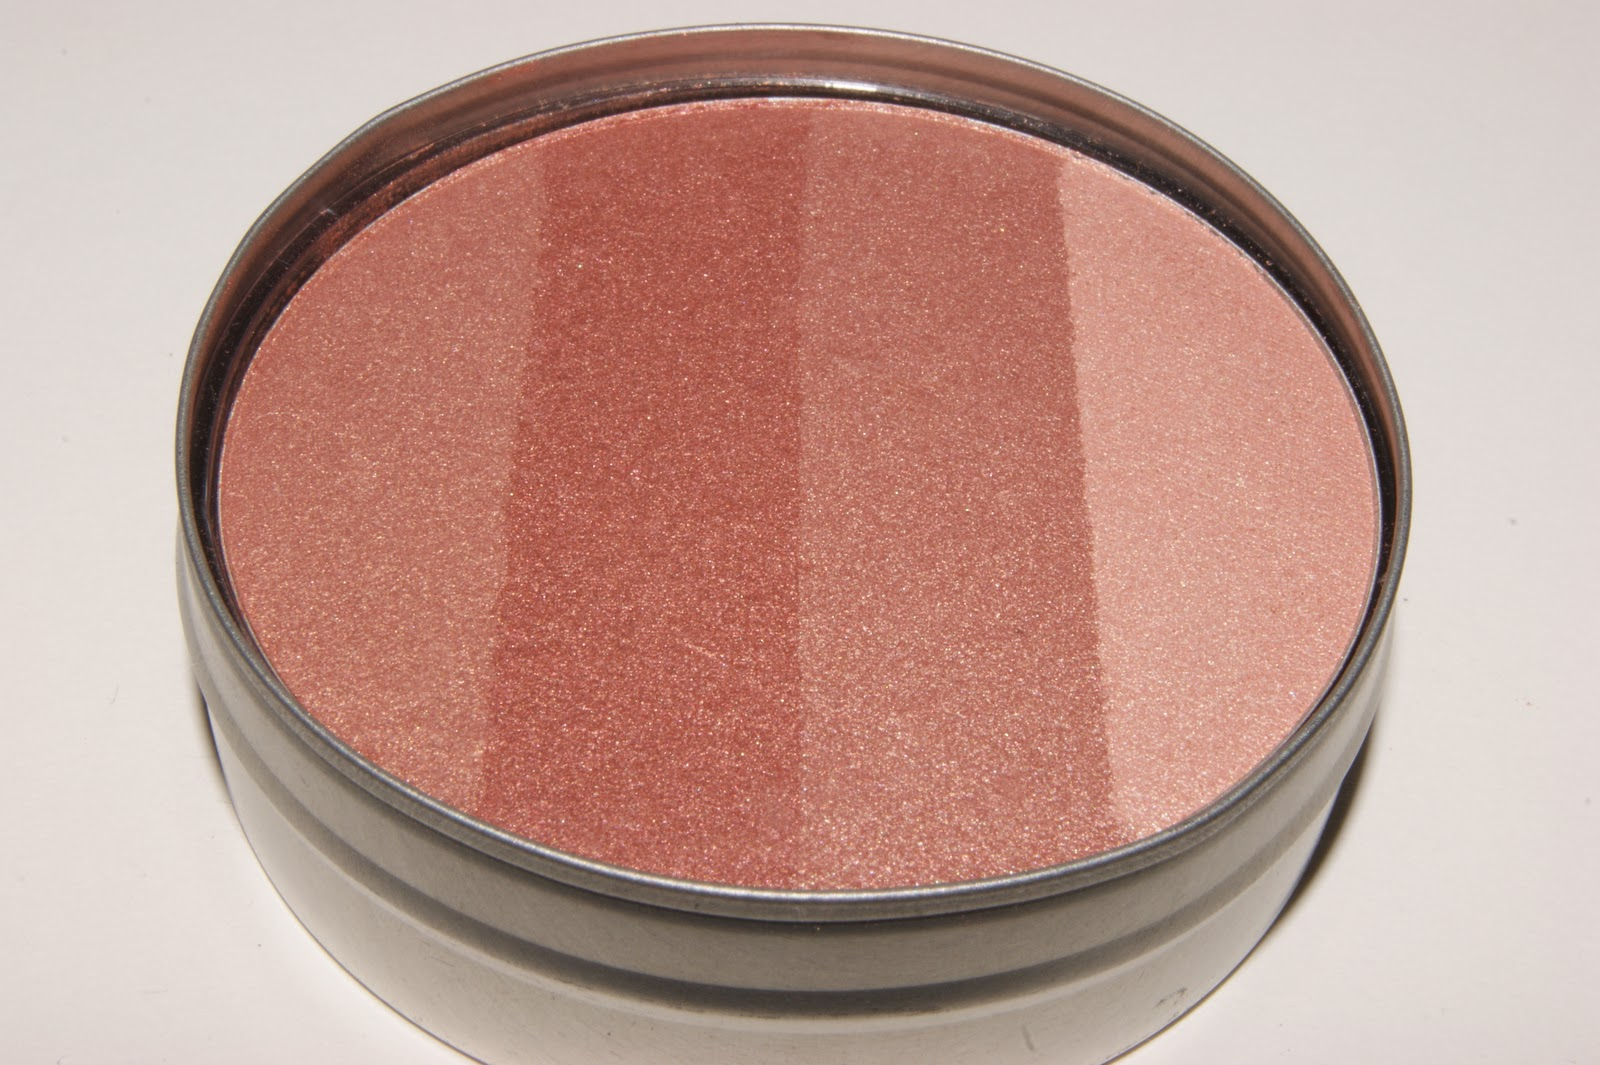 Cargo Beach Blush in Miami Beach Review